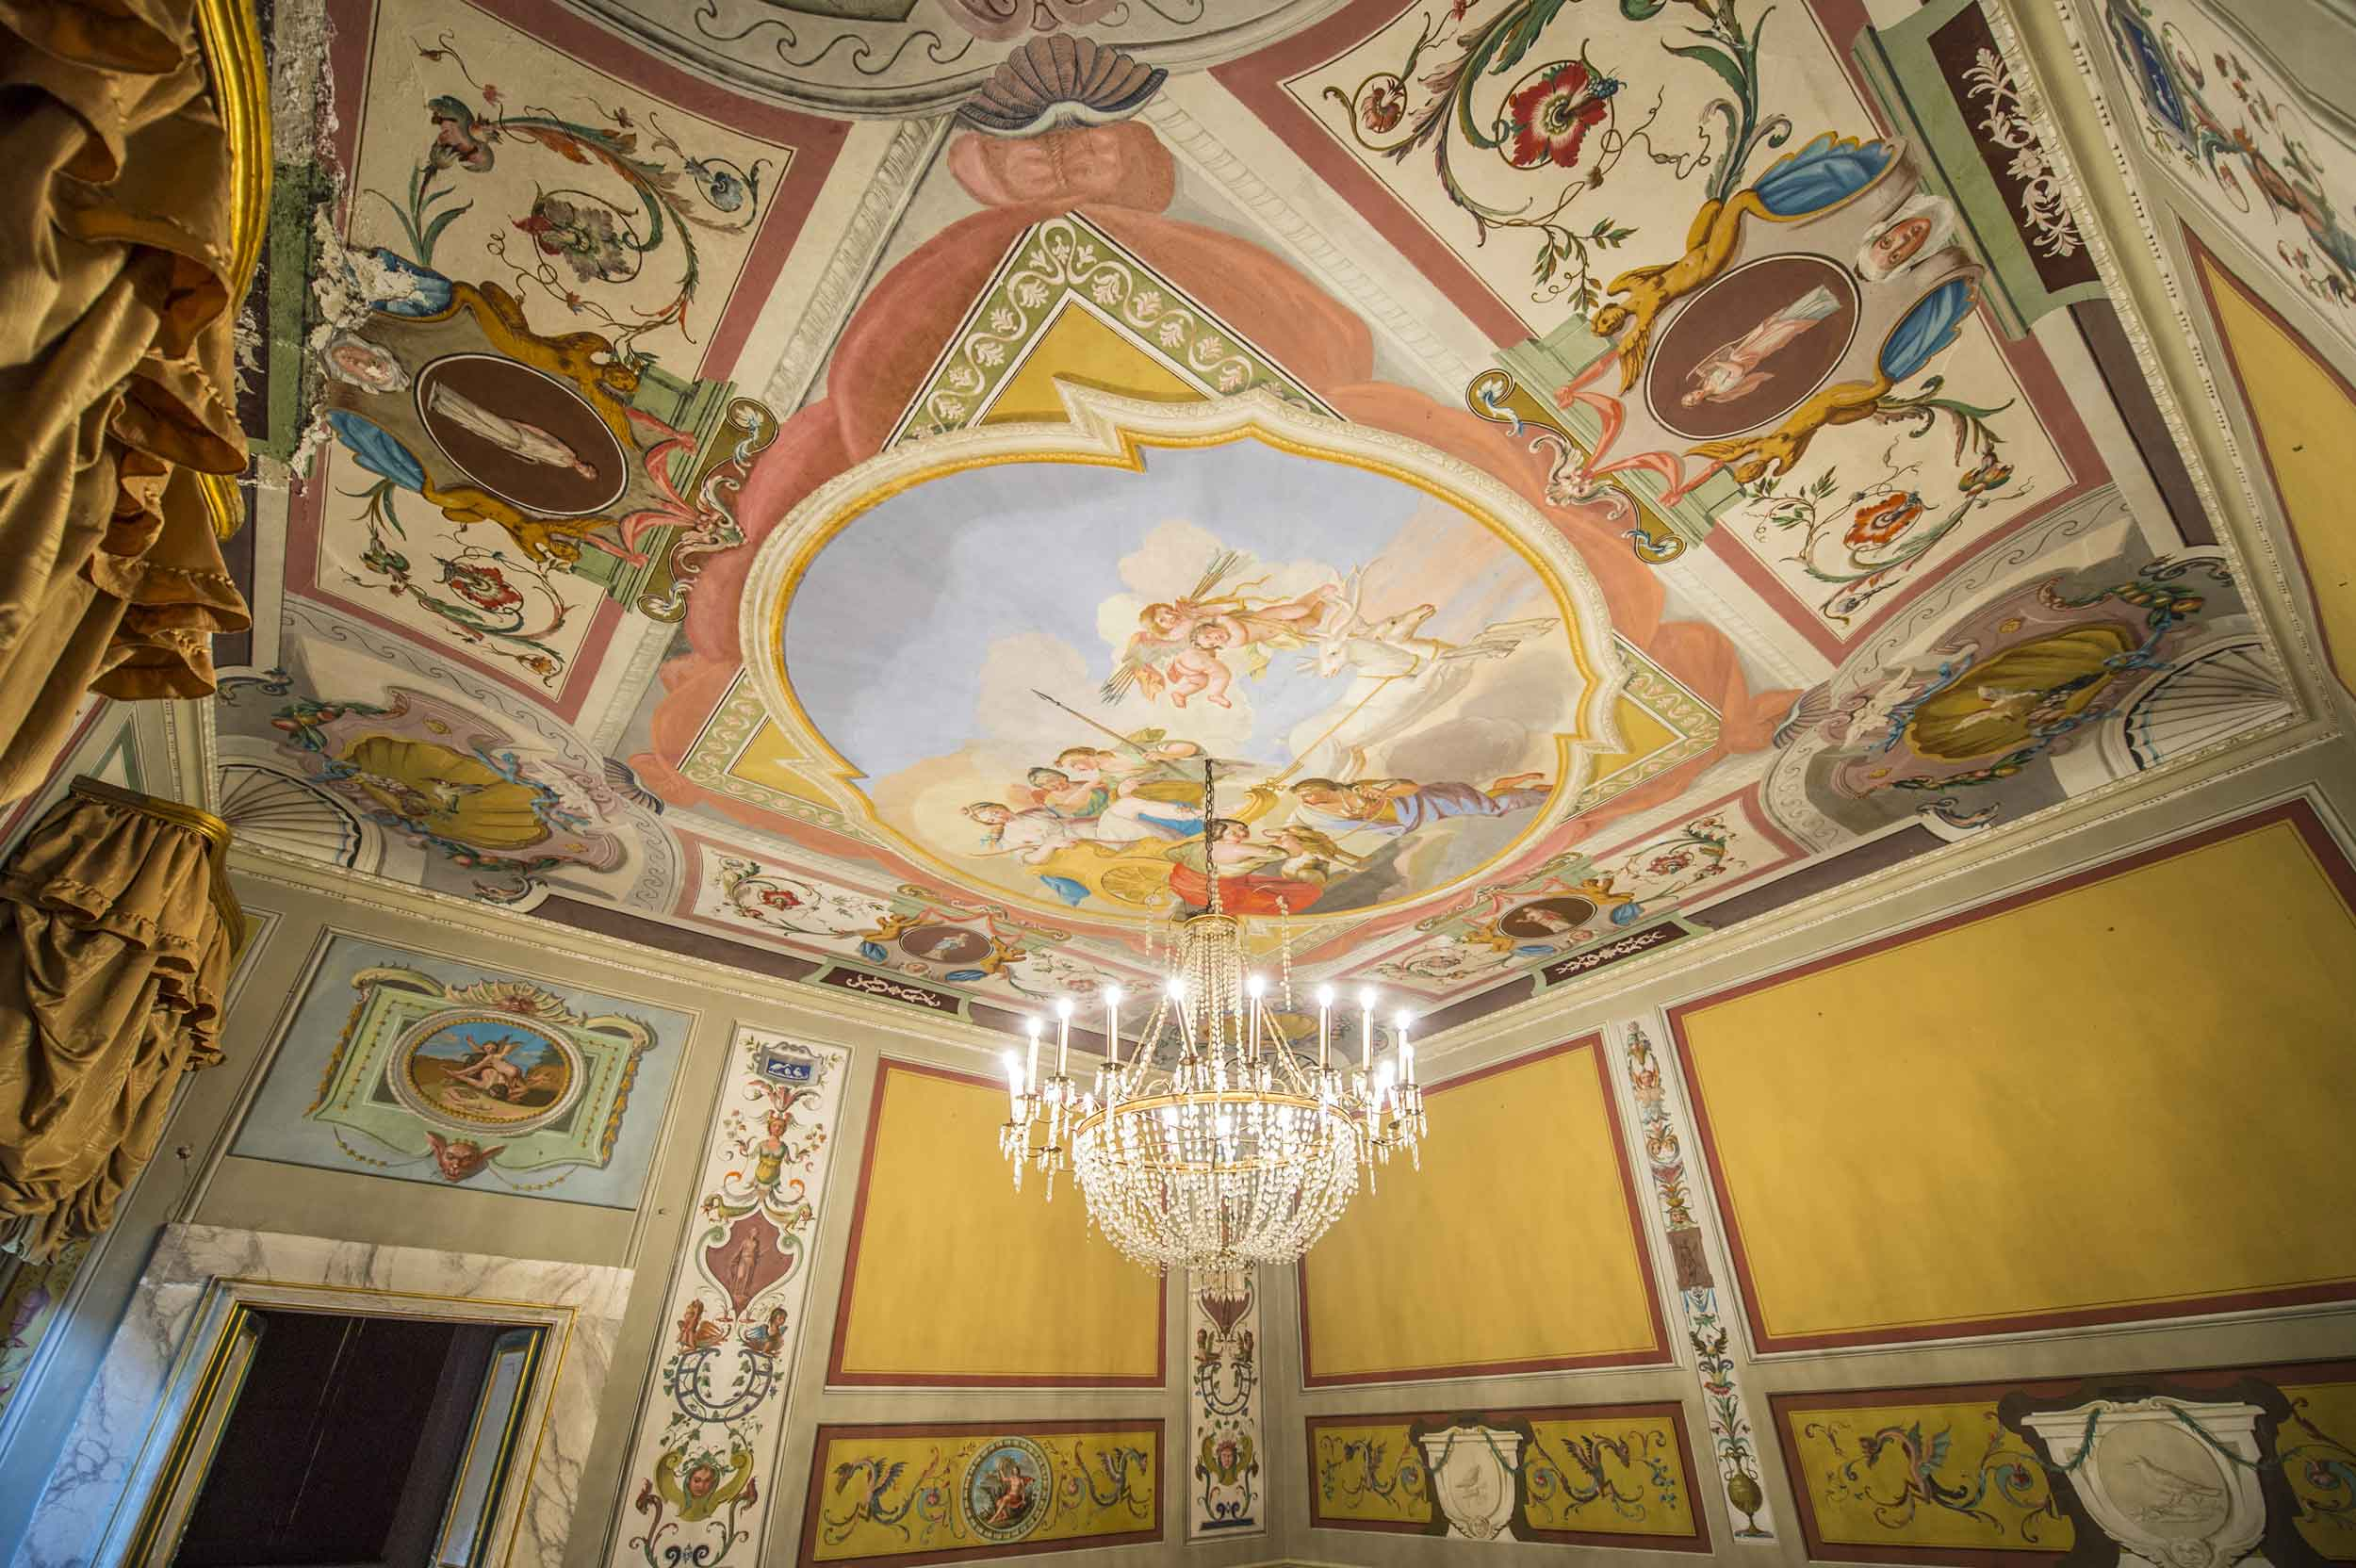 The villa's exuberant interior spaces display opulent frescoes, rich finishes and exquisite architectural details which date from the 15th century.